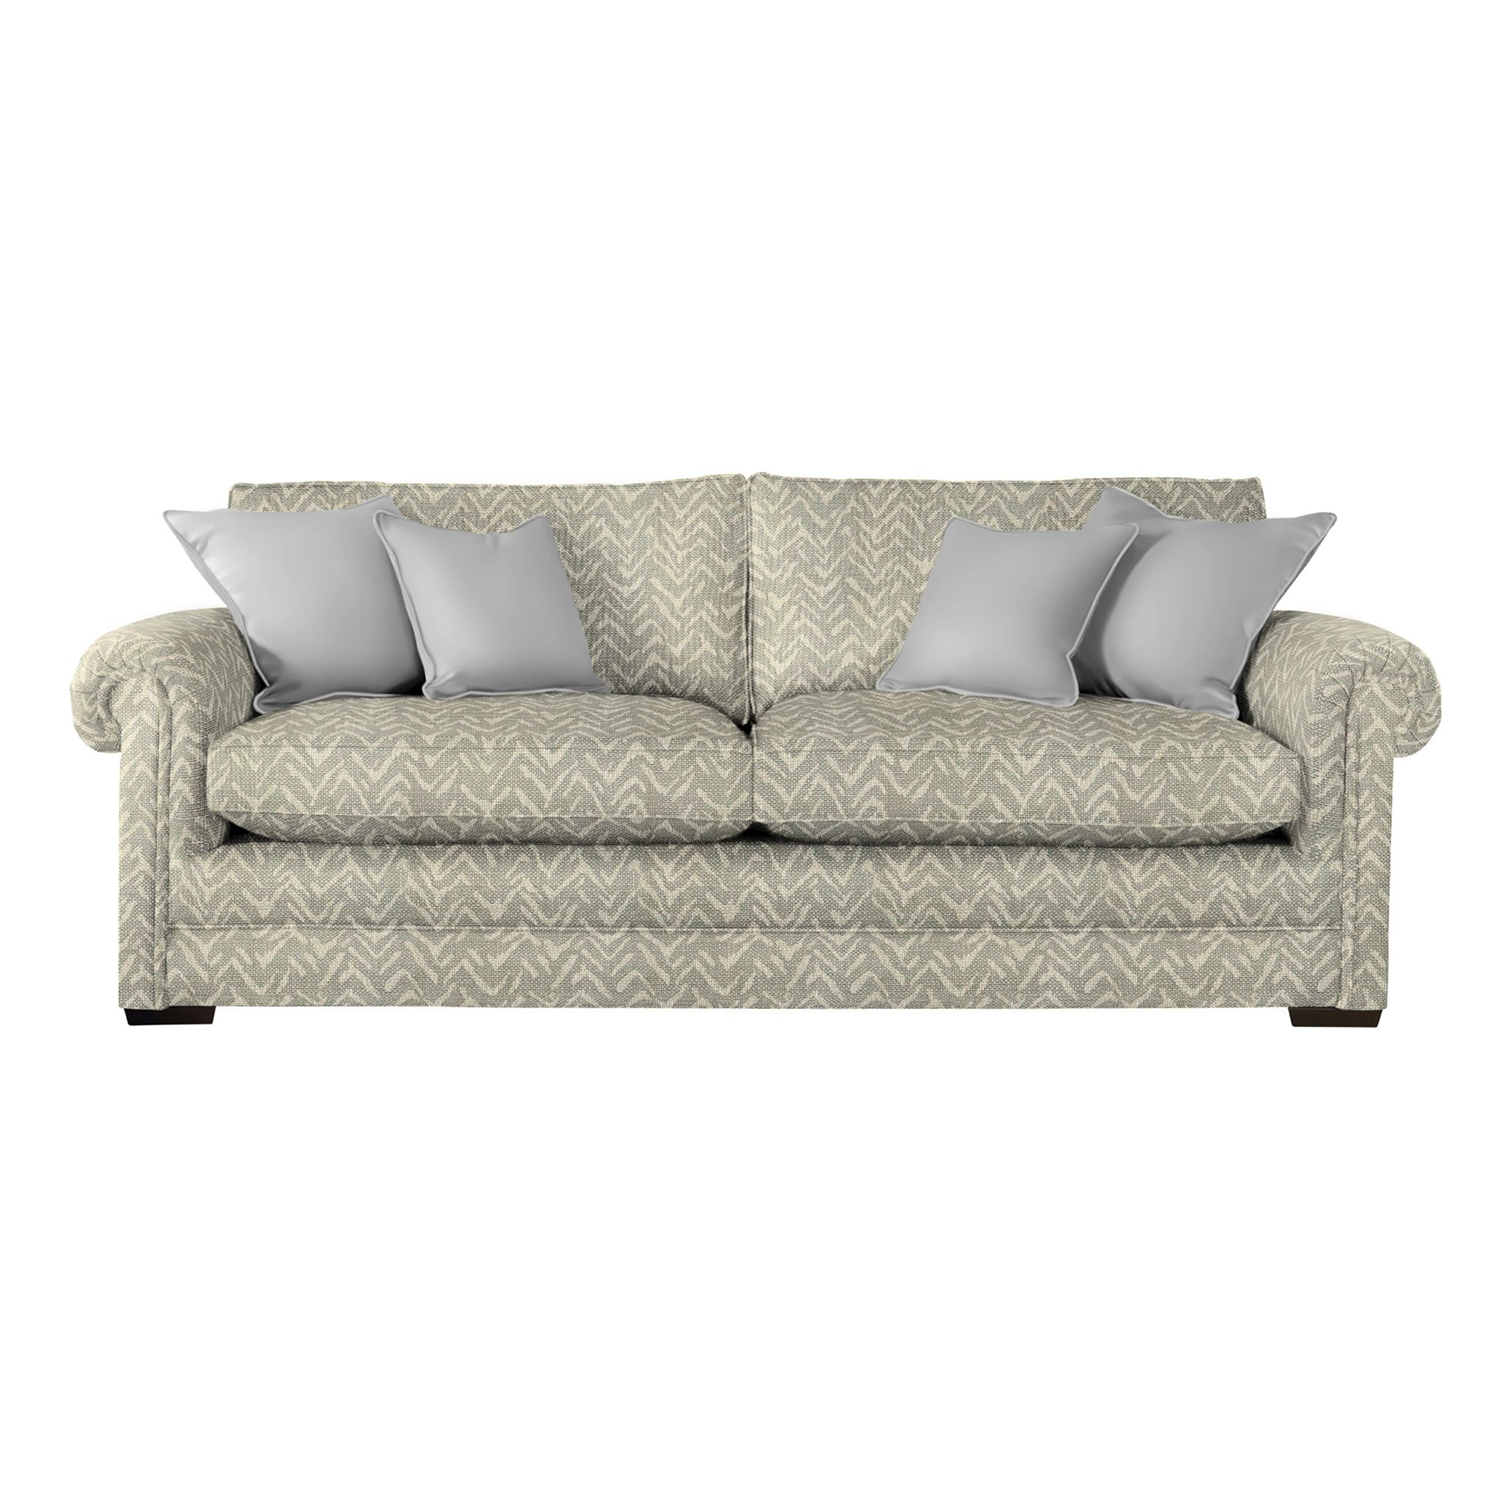 Image of Parker Knoll Canterbury Grand 3 Seater Fabric Sofa, Gower Grey